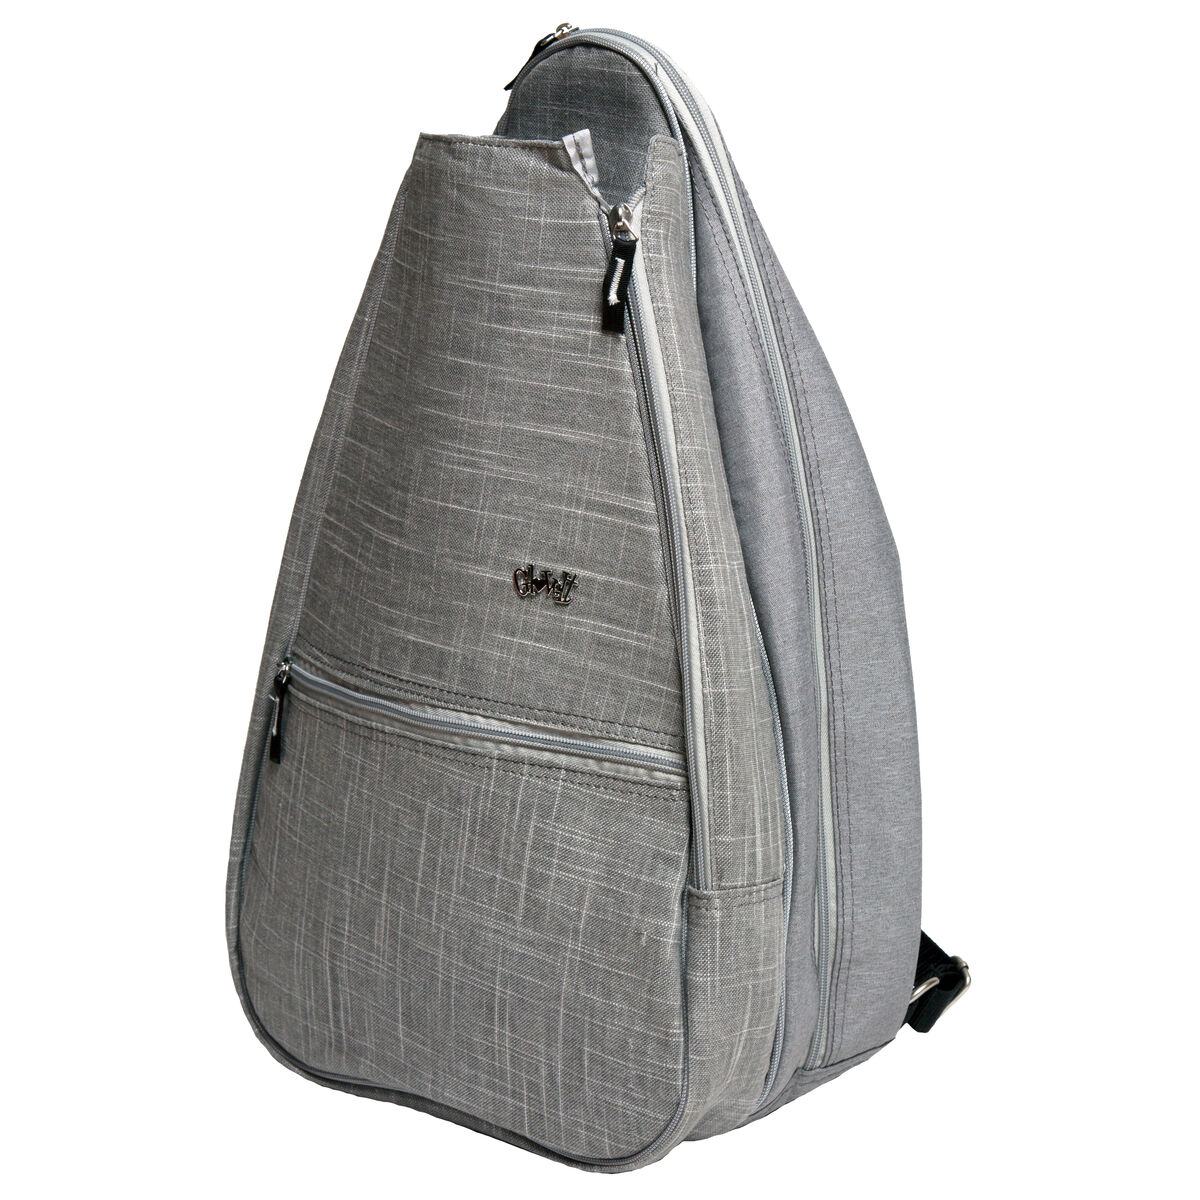 ce16d3de32 Images. Glove It Silver Lining Backpack